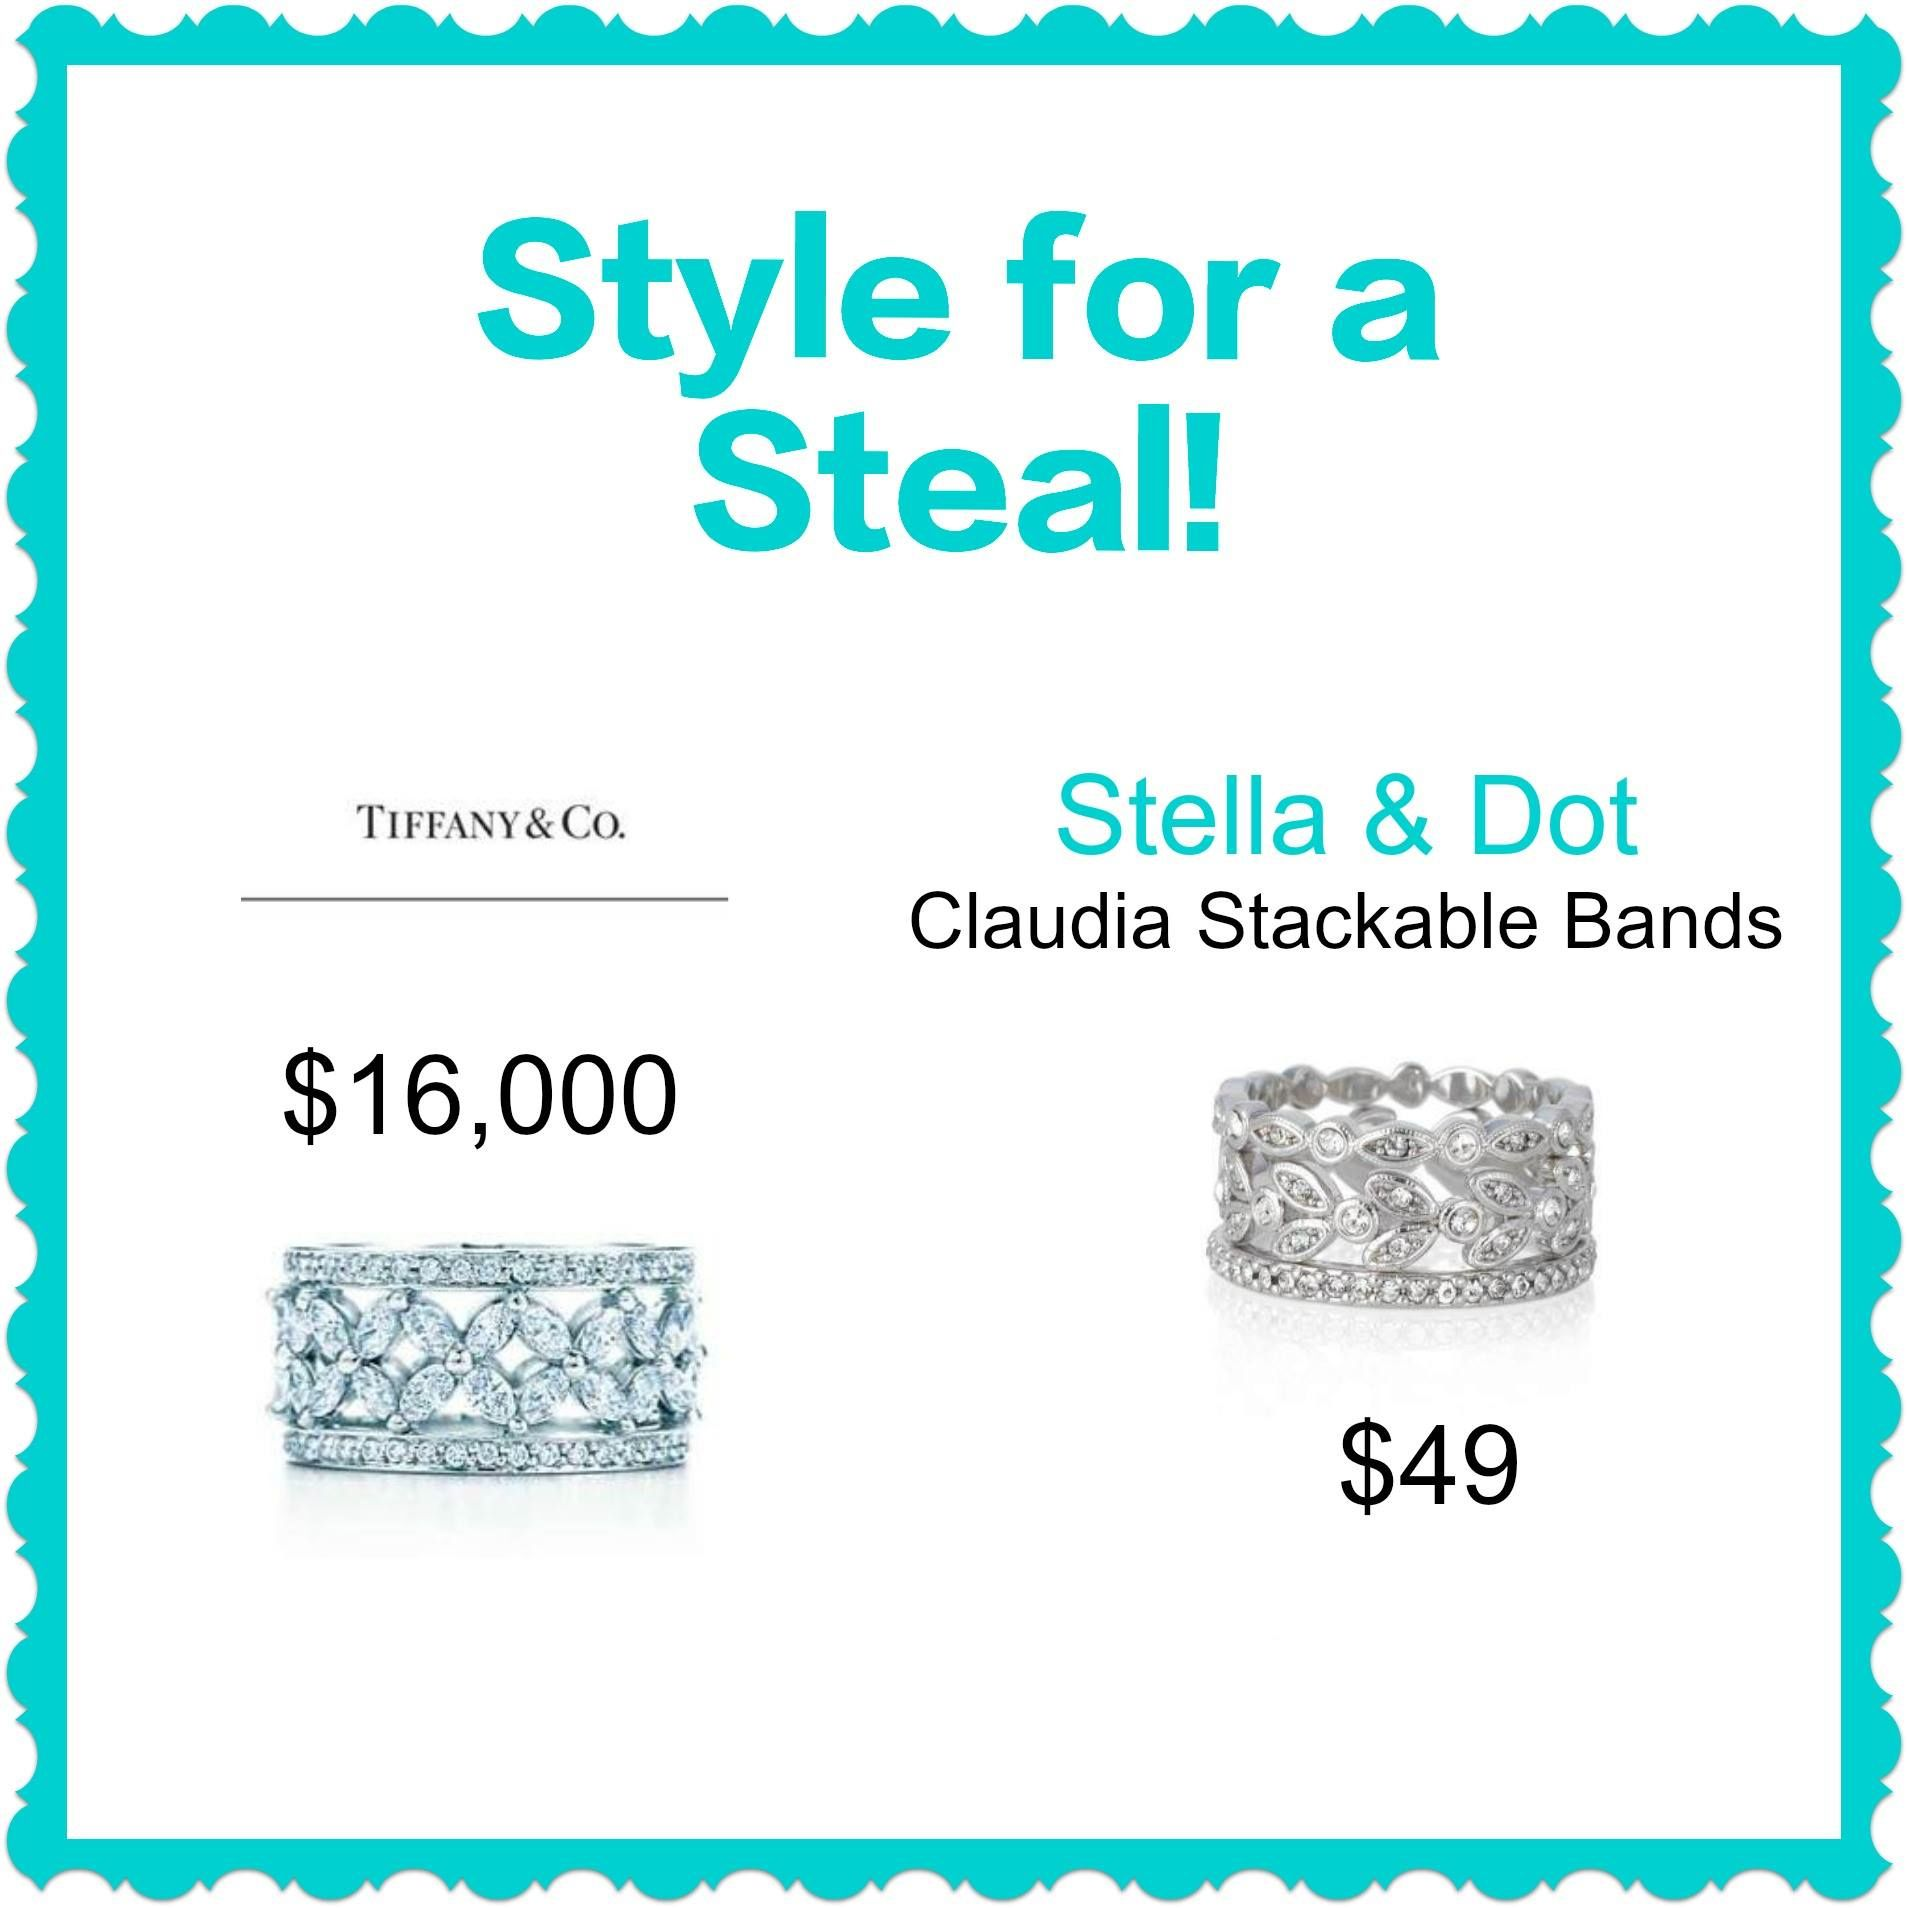 Style for a steal!  Our Claudia Stackable Bands are beautiful and are 3 separate rings.  www.stelladot.com/jackiebrowning